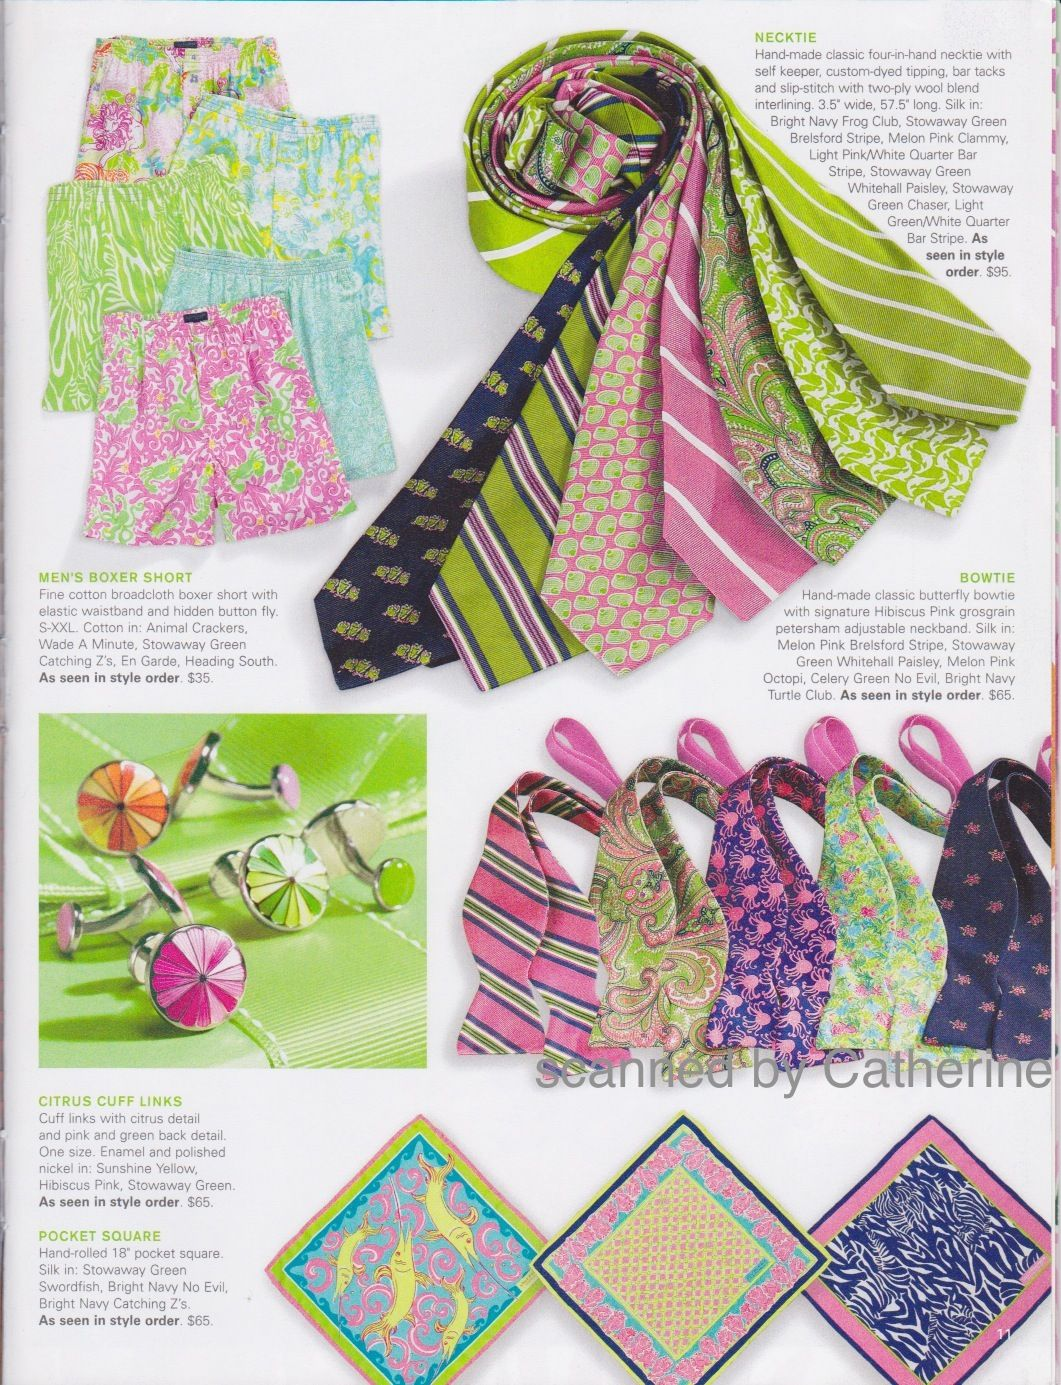 Christmas Gift Guide Catalogue.Pin By Catherine On Lilly Pulitzer 2007 Holiday Gift Guide